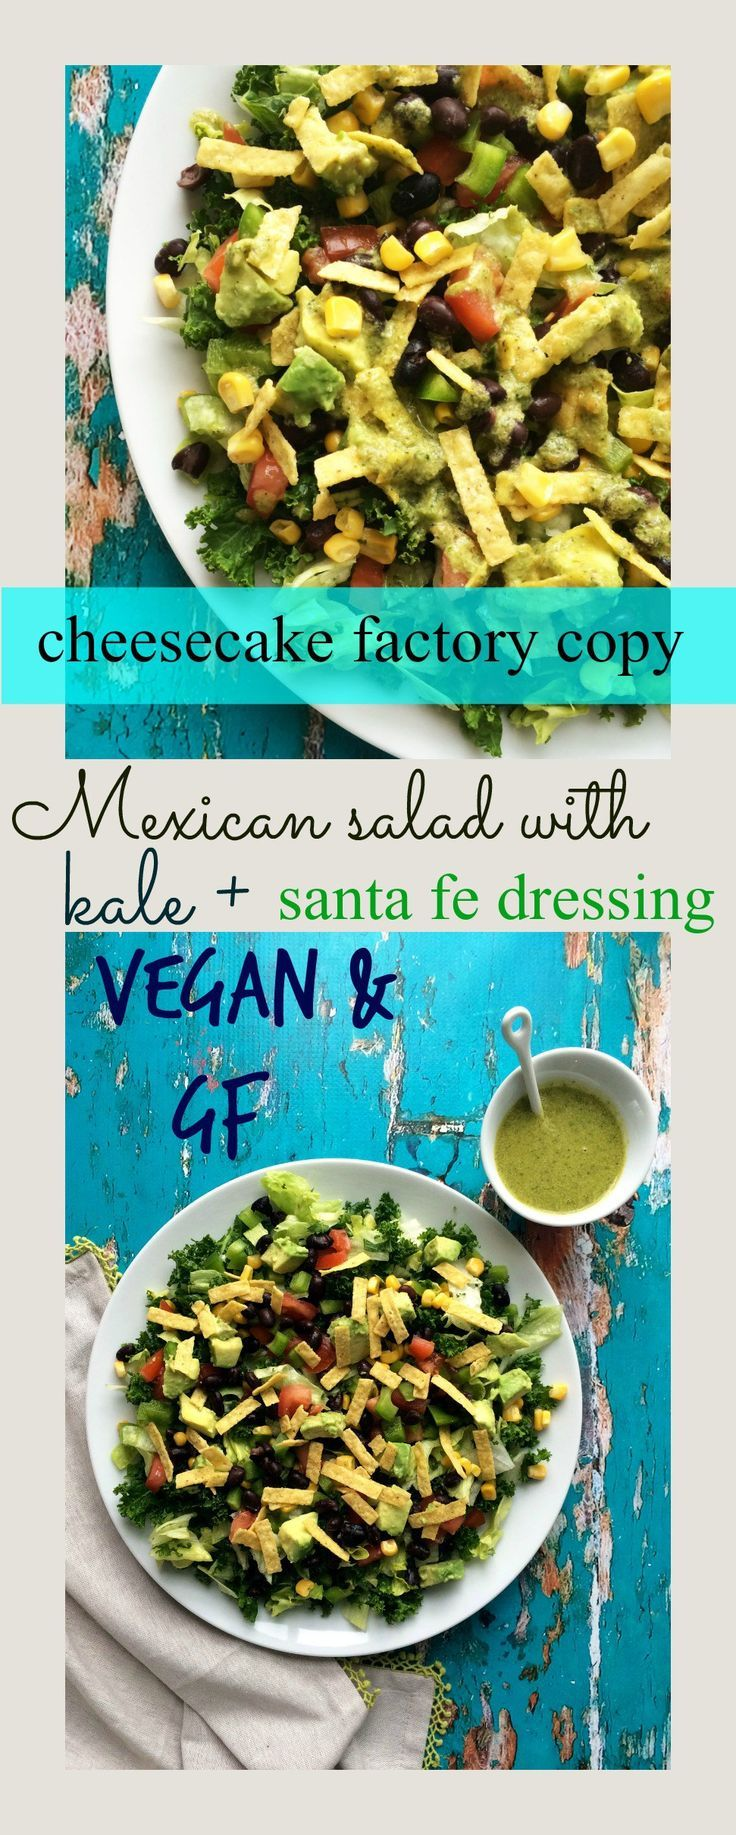 Mexican salad with kale and santa fe dressing (vegan + gf ). A cheesecake factory inspired salad . Makes a filling lunch.